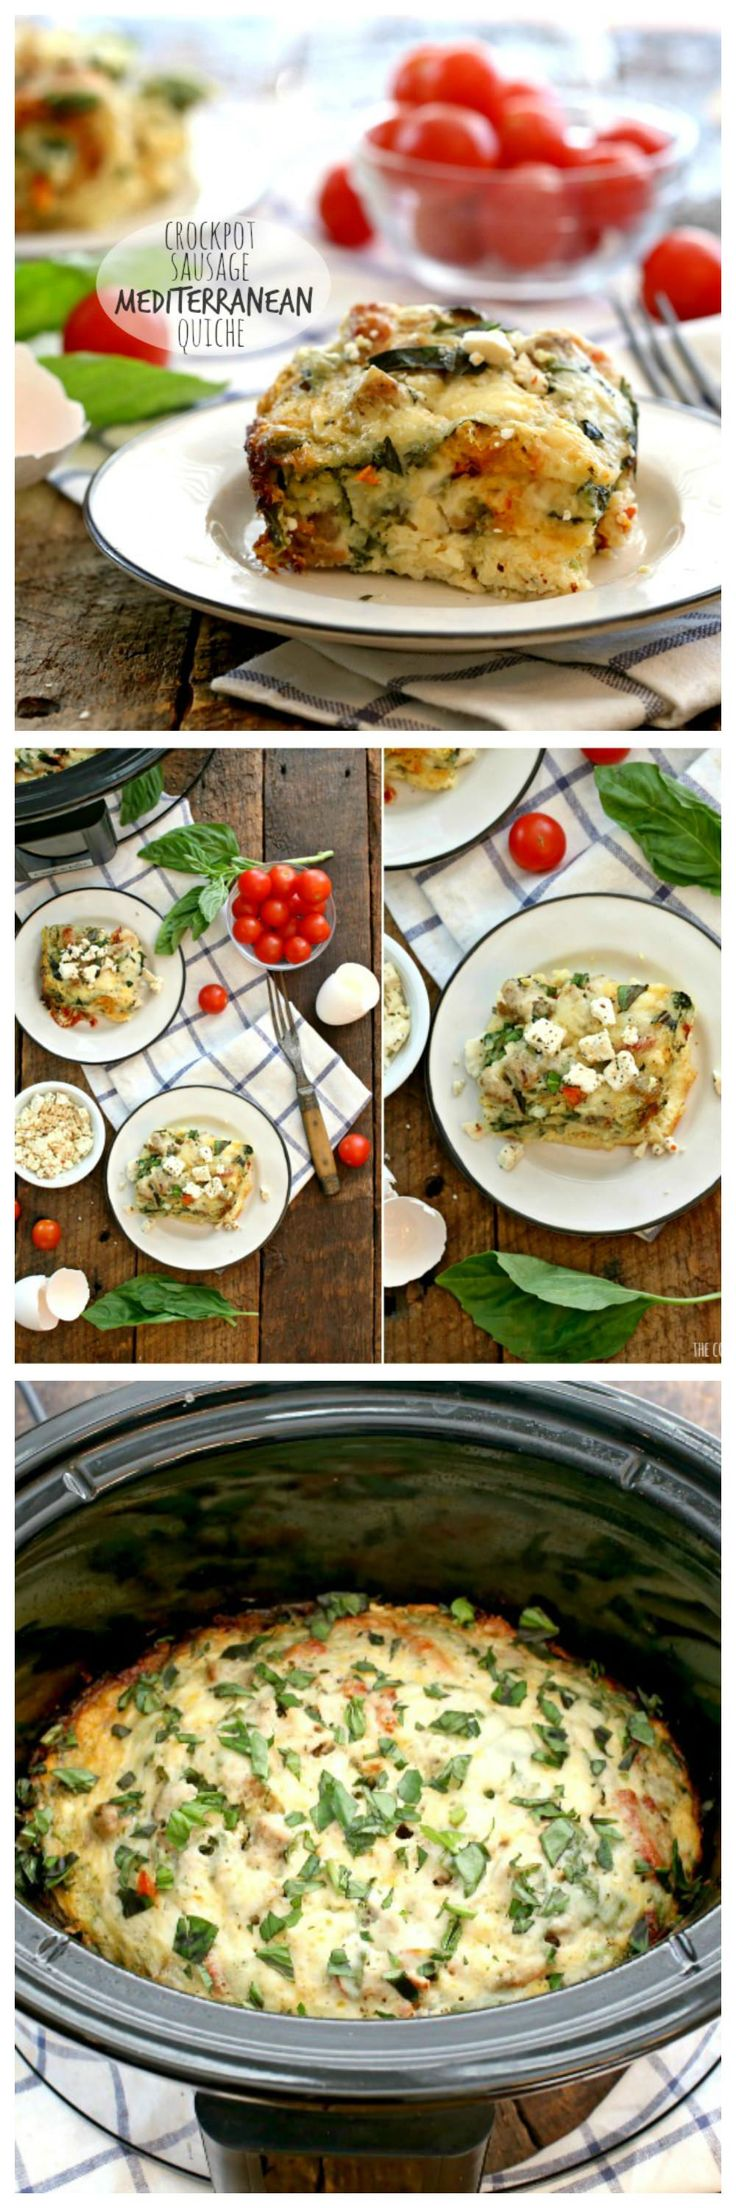 crockpot healthy sausage mediterranean quiche recipe